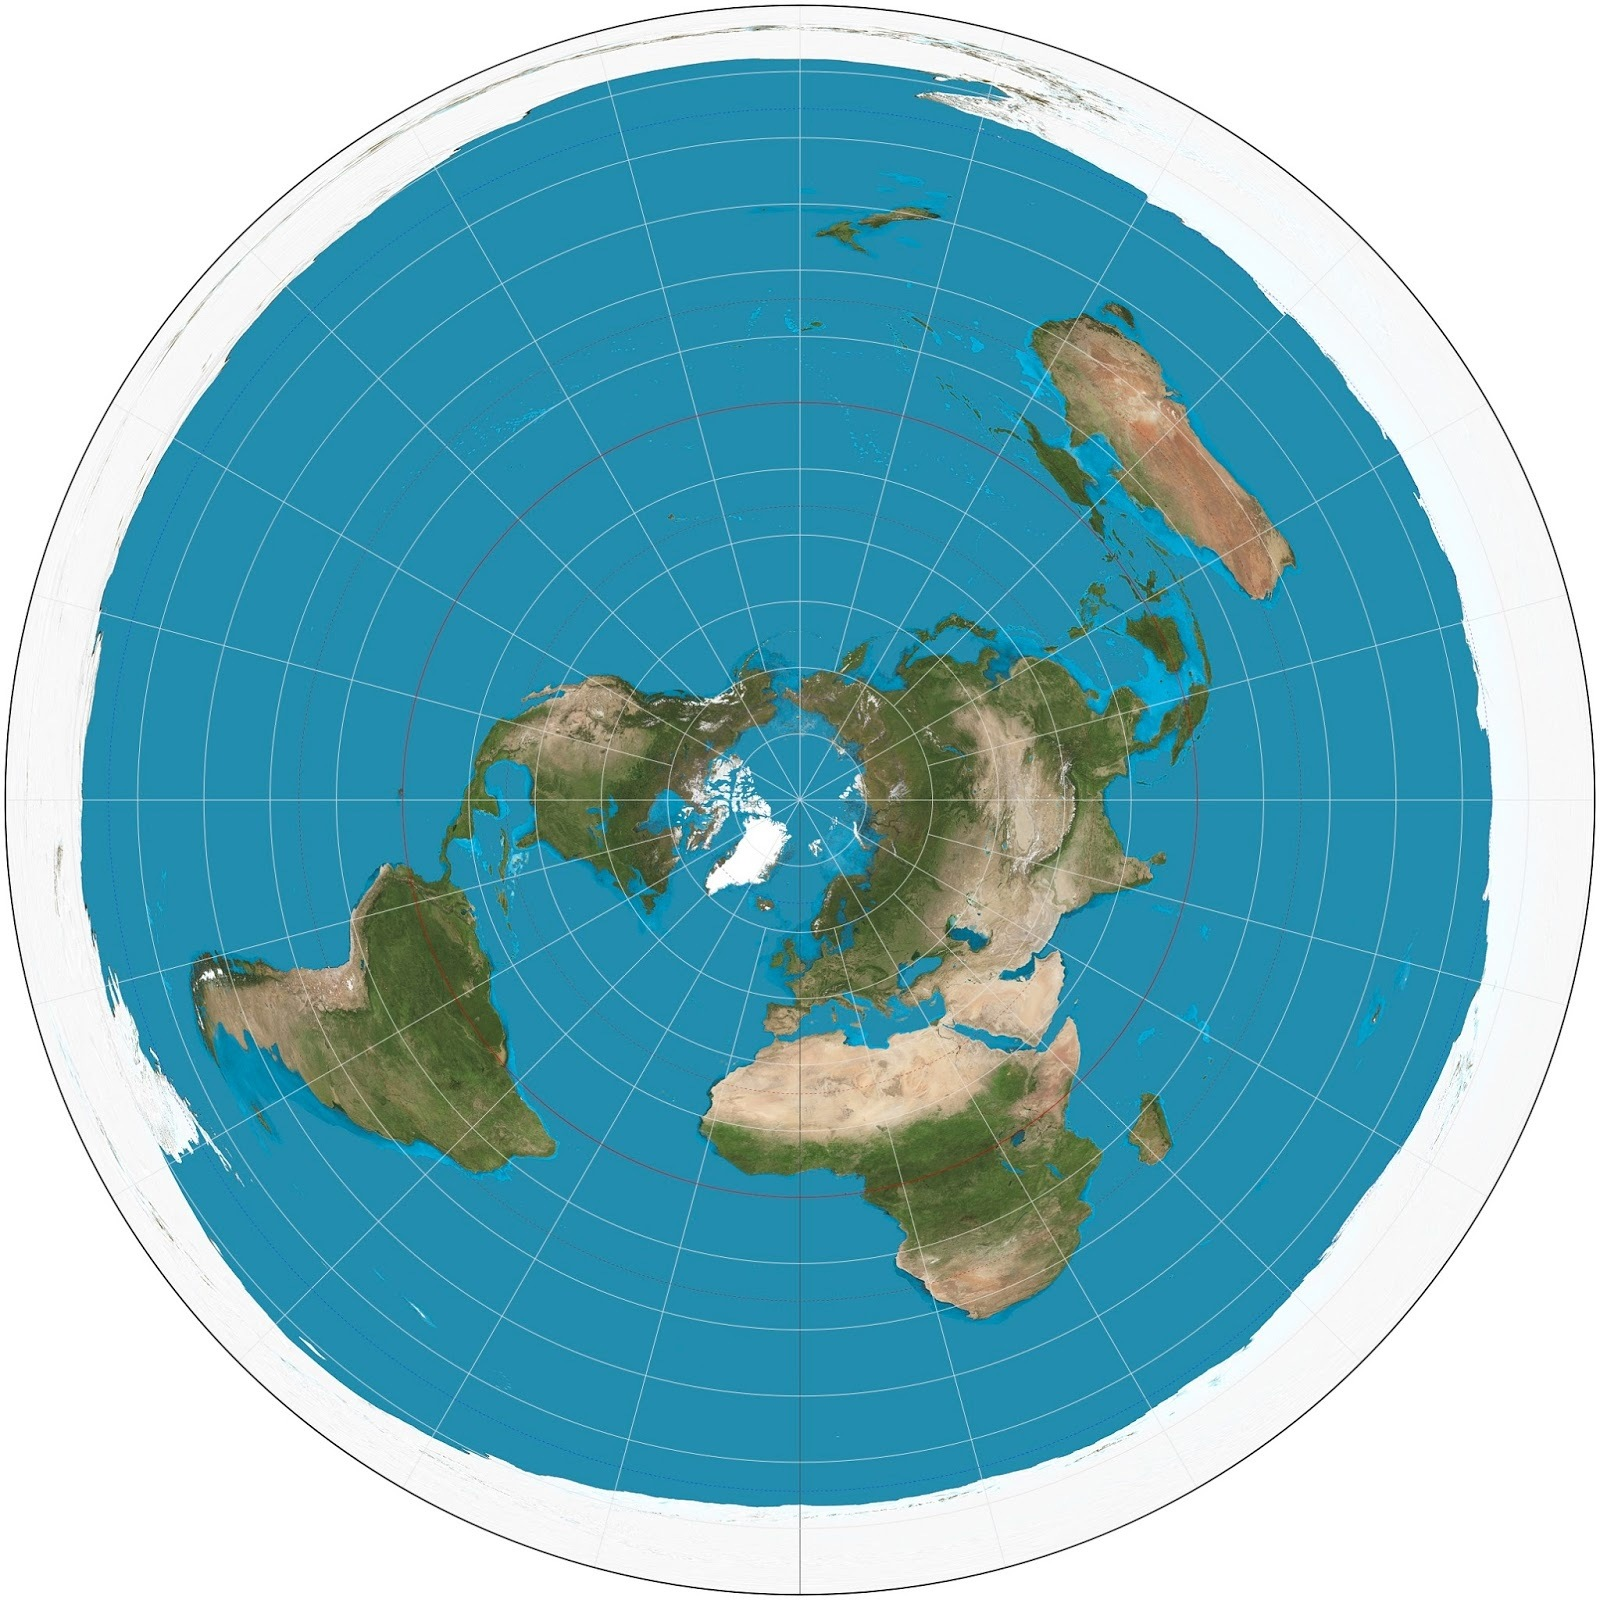 Official Flat Earth Map.Do You Have A Picture Of A Flat Earth World Map Quora